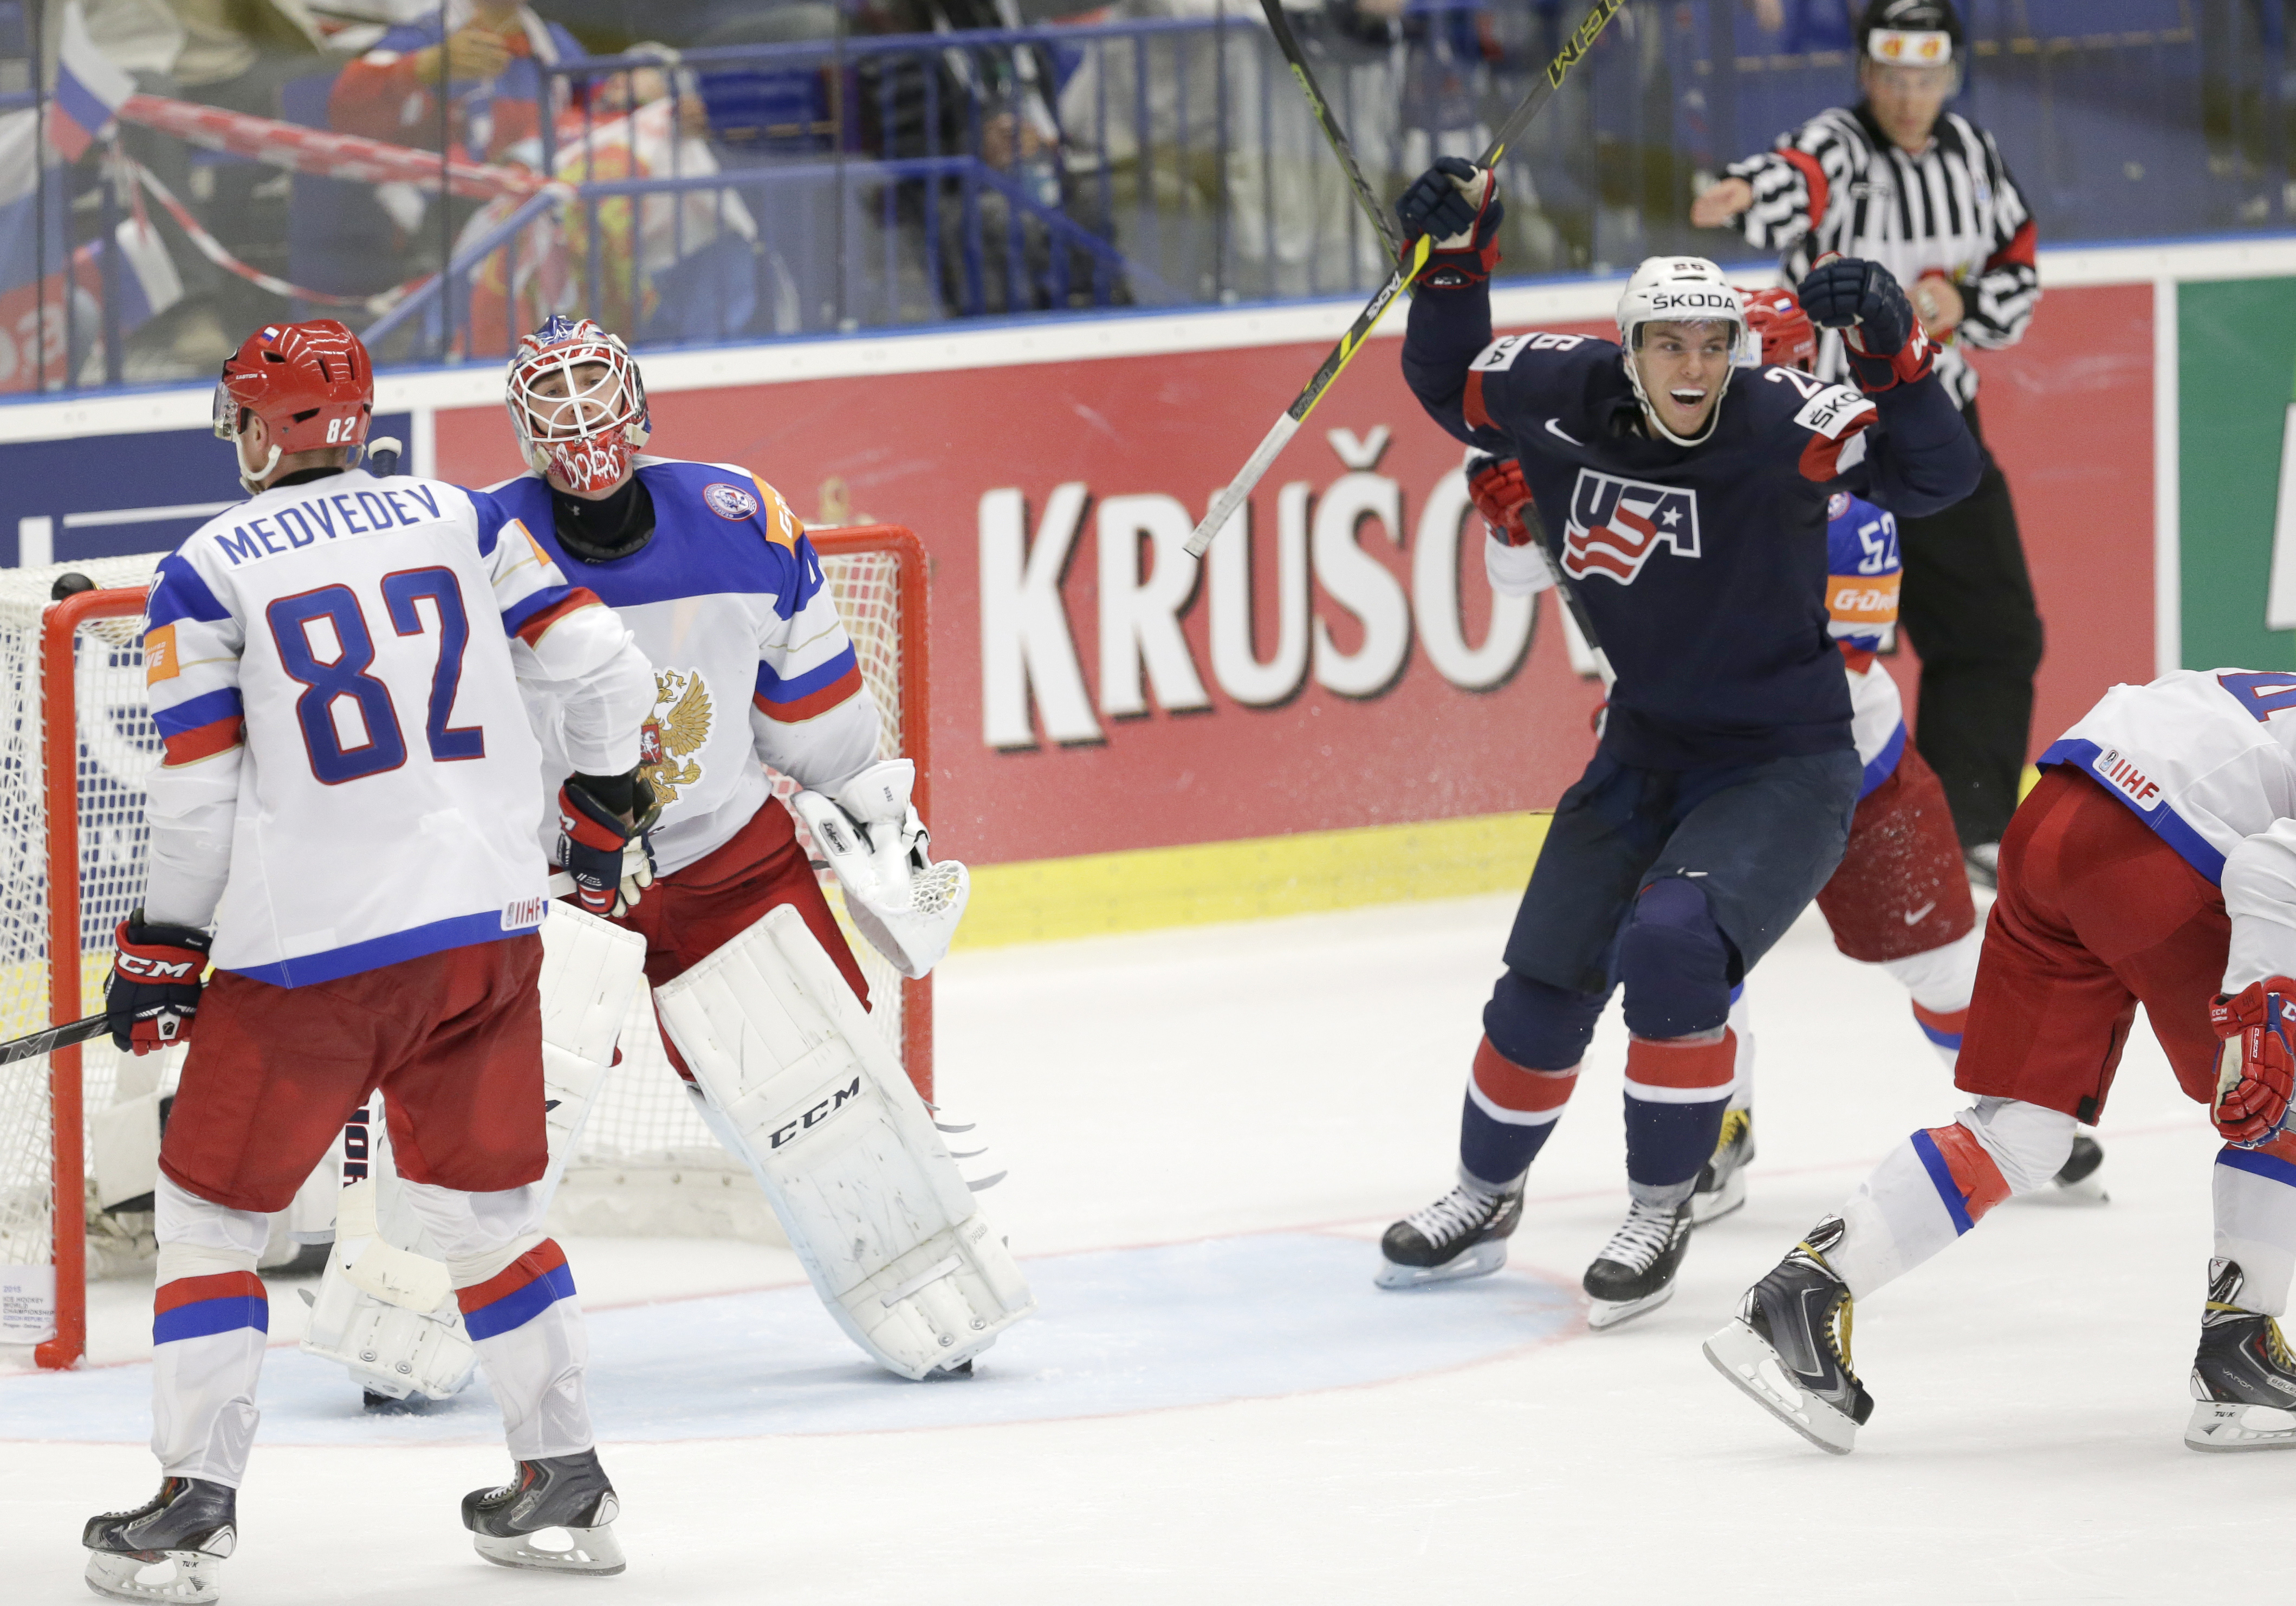 Russia's goalkeeper Sergei Bobrovski is dejected as Jeremy Morin of USA, right celebrates during the Hockey World Championships Group B match in Ostrava, Czech Republic, Monday, May 4, 2015. (AP Photo/Sergei Grits)